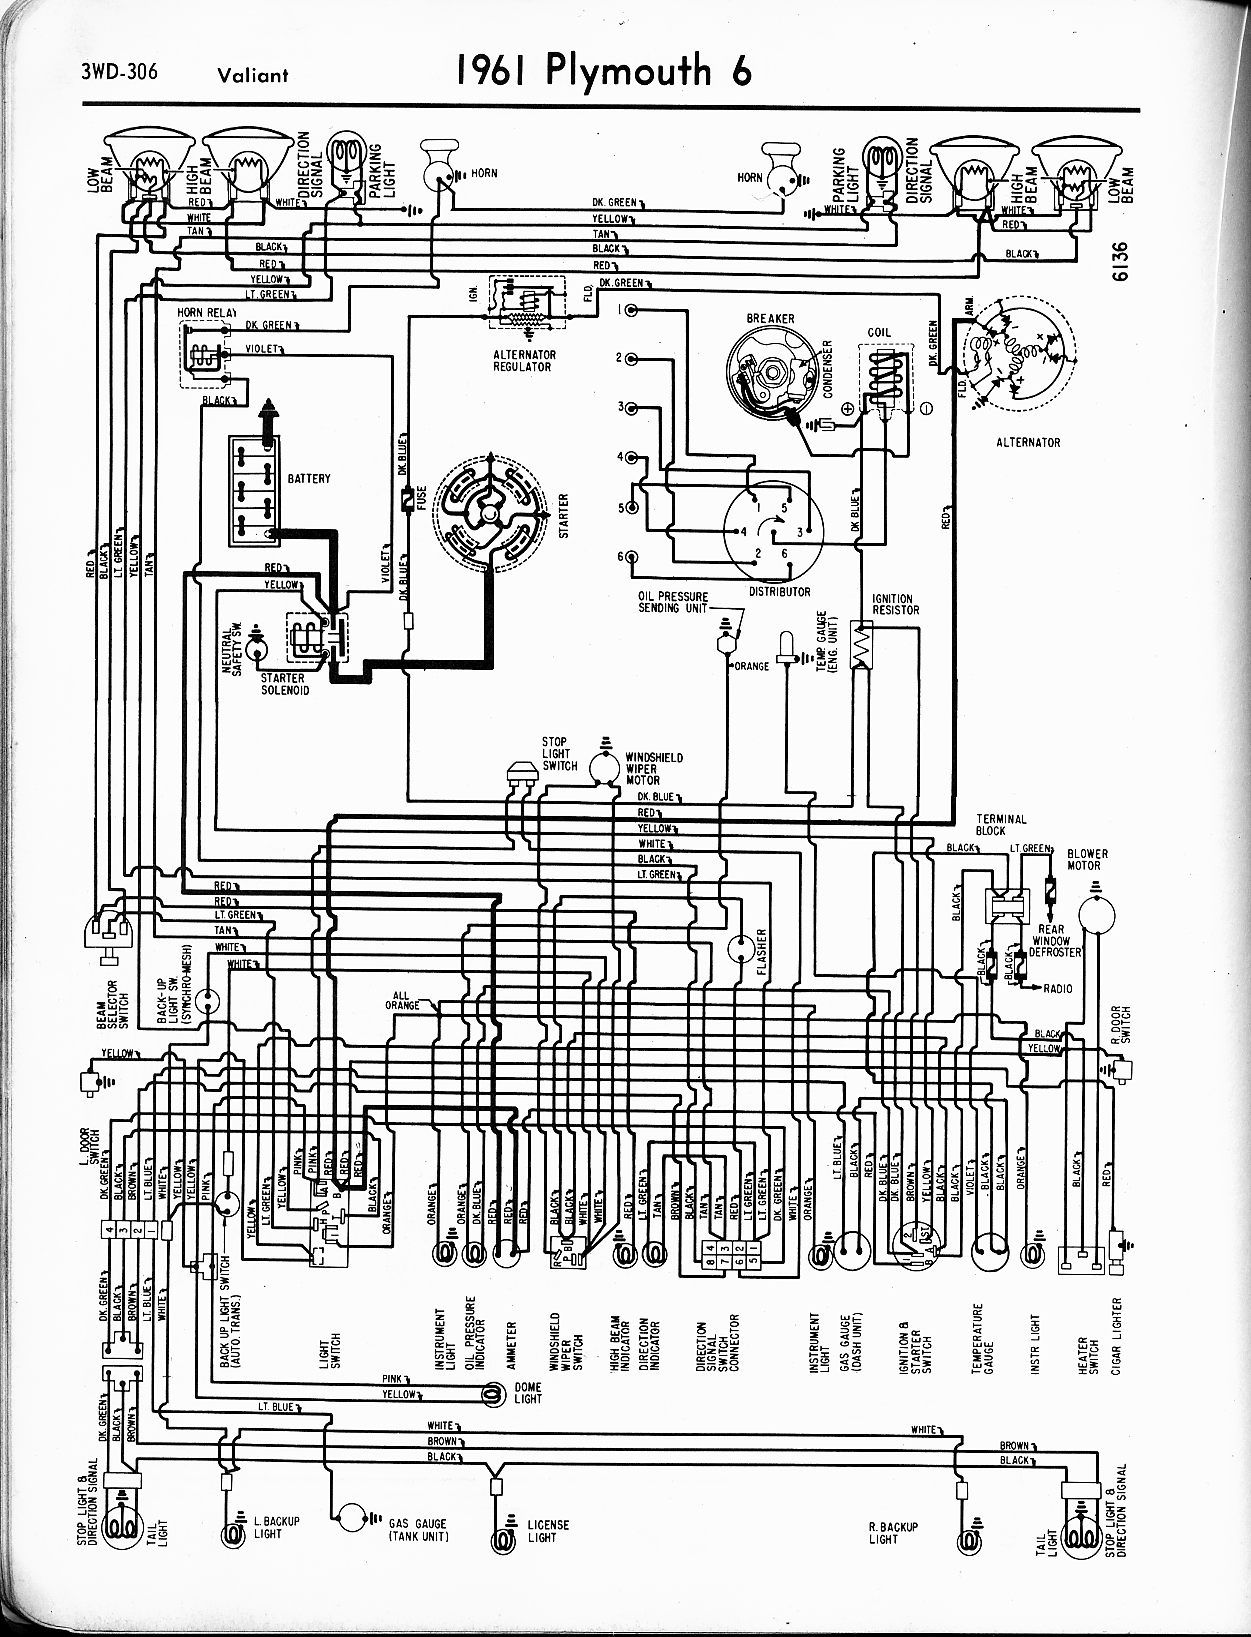 MWire5765 306 1969 dodge dart wiring diagram 1969 ford fairlane wiring diagram 1969 plymouth satellite wiring diagram at n-0.co